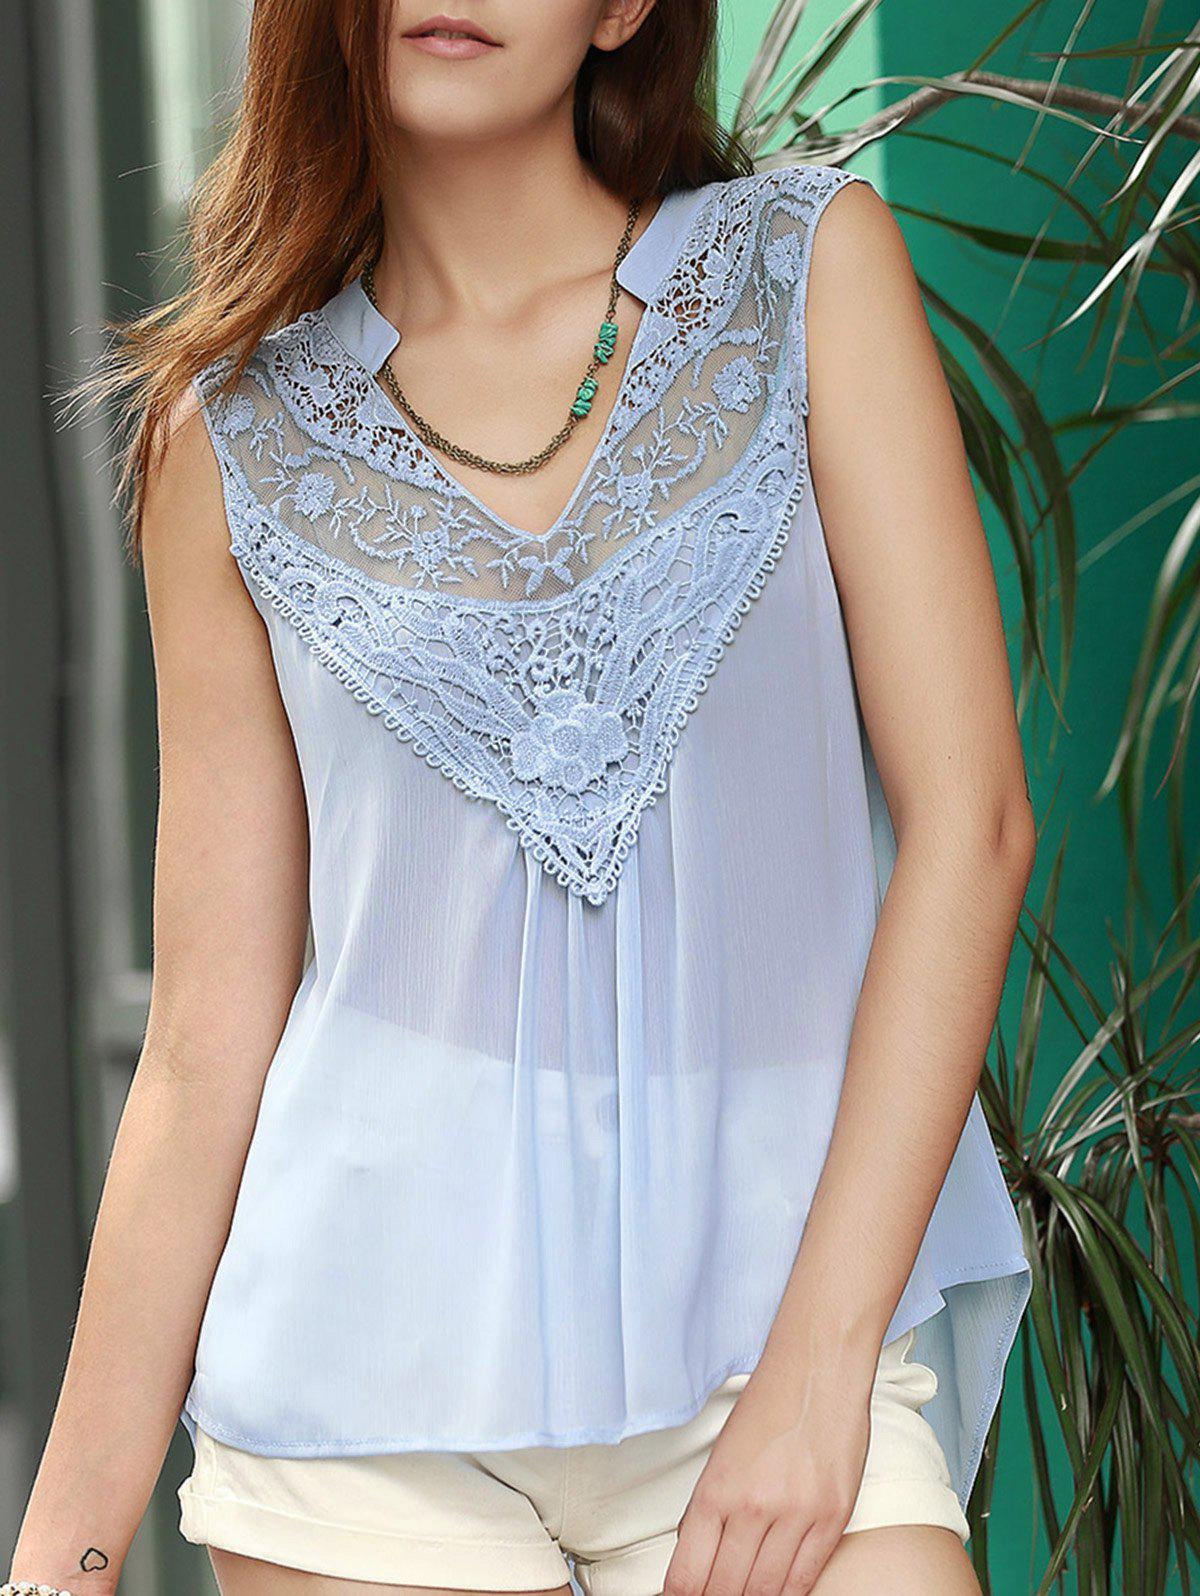 Trendy V Neck Lace Spliced Chiffon Tank Top For Women trendy women s v neck lace embellished tank top